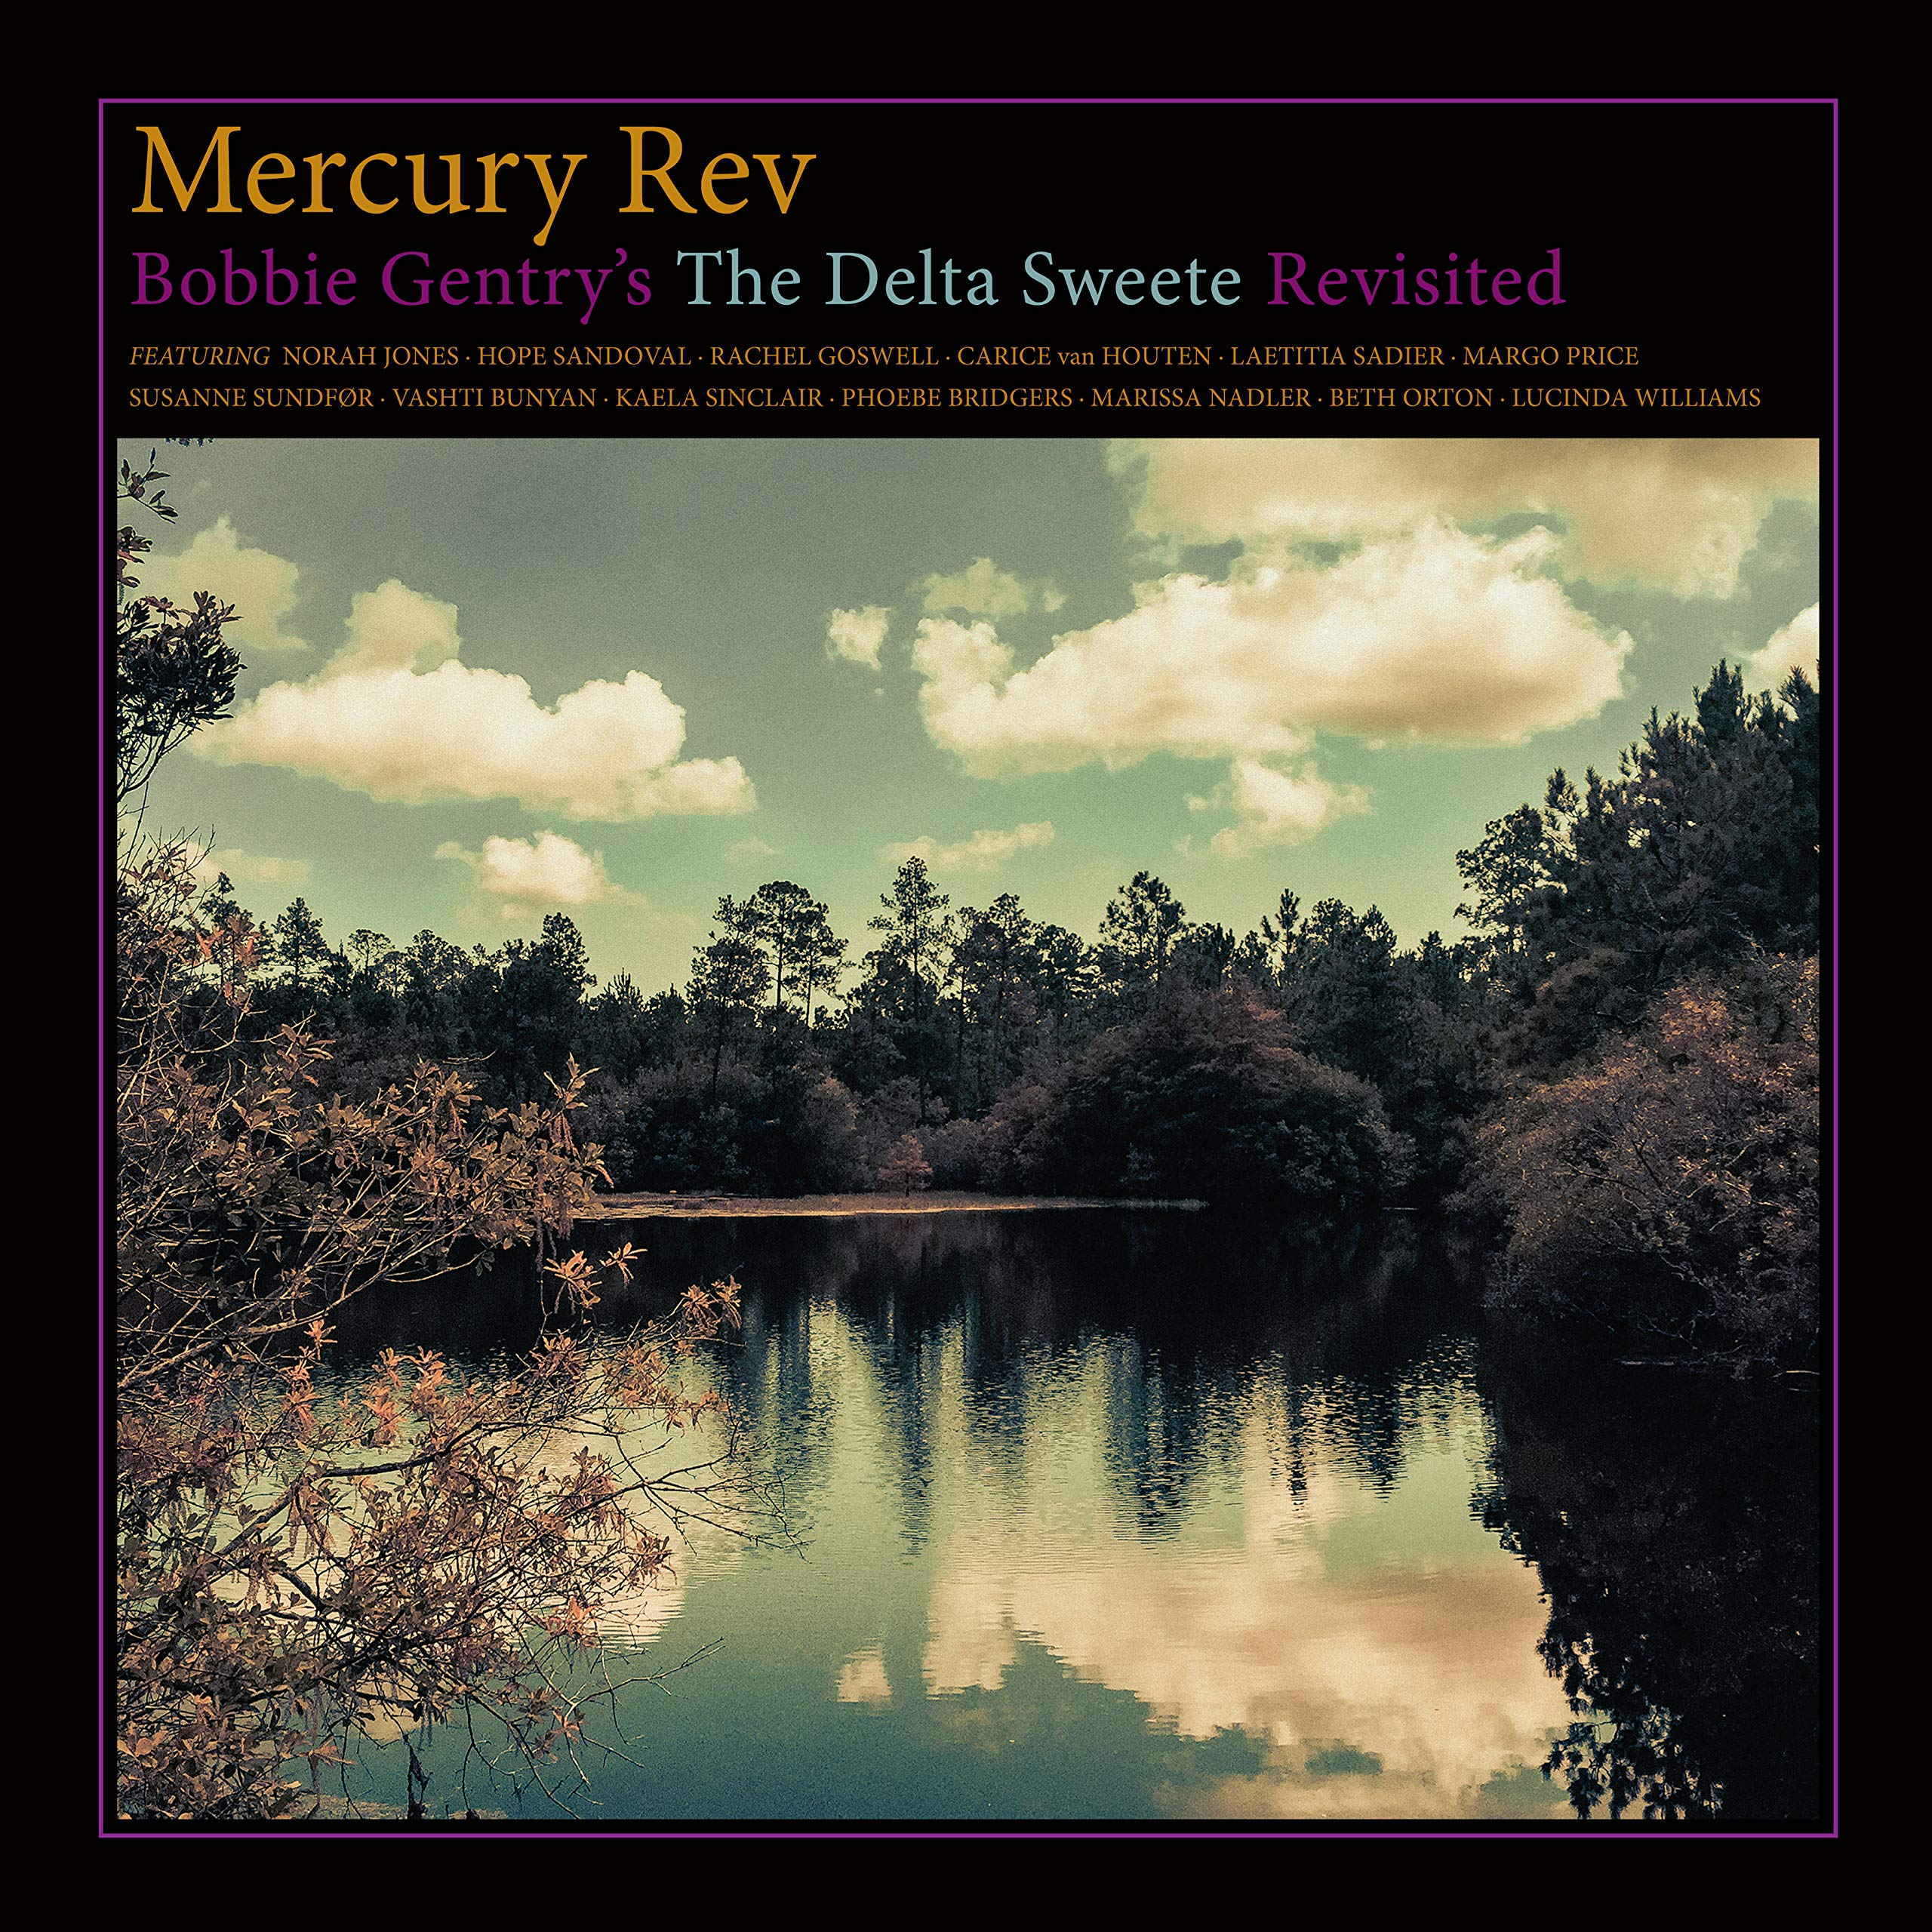 CD : Mercury Rev - Bobbie Gentry's The Delta Sweete Revisited (CD)